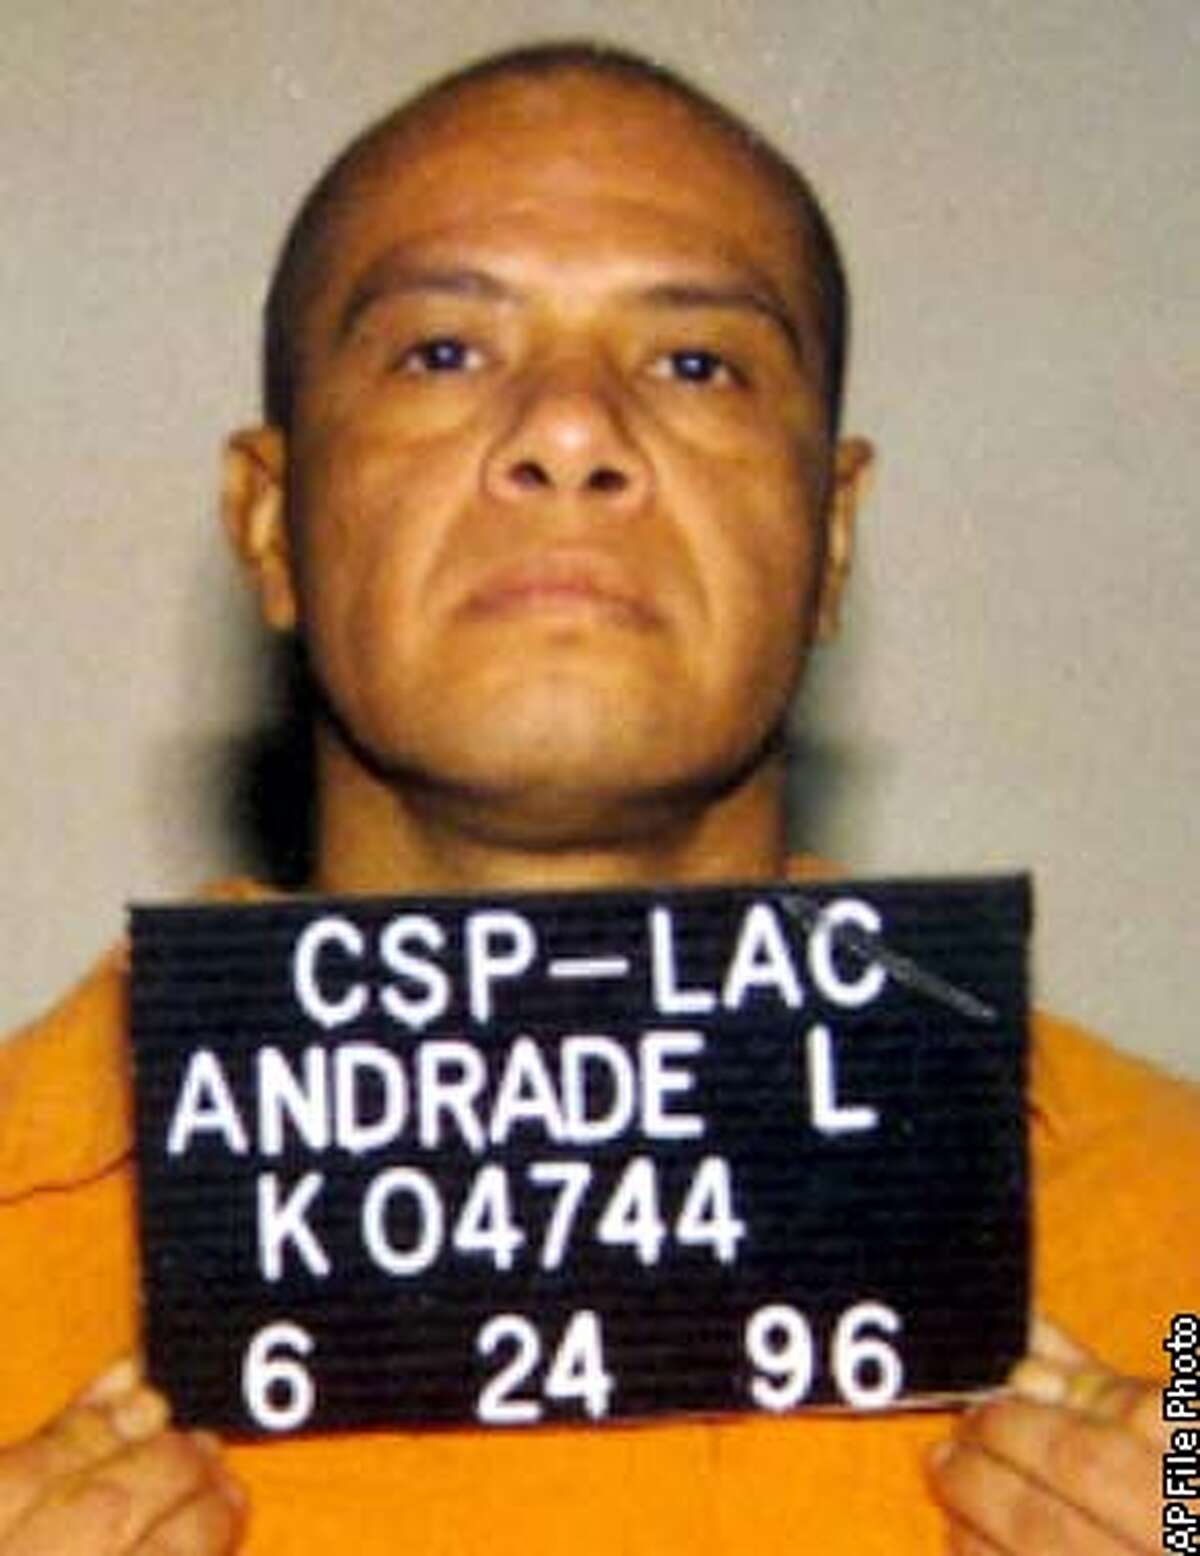 ** FILE ** This is an undated California Department of Corrections photo of Leandro Andrade. The Supreme Court decided Wednesday, March 5, 2003, to uphold long sentences meted out in two cases under the nation's toughest three-time offender law. The court reversed a federal appeals court ruling which had found Andrade's sentence unconstitutional. Andrade, a heroin addict had previous burglary convictions when he was caught shoplifting $153 worth of videocassettes from K-Mart. Under California's three-strikes-you're-out law, he'll be at least 87 when he gets out of prison. (AP Photo/Calif. Department Of Corrections, file)